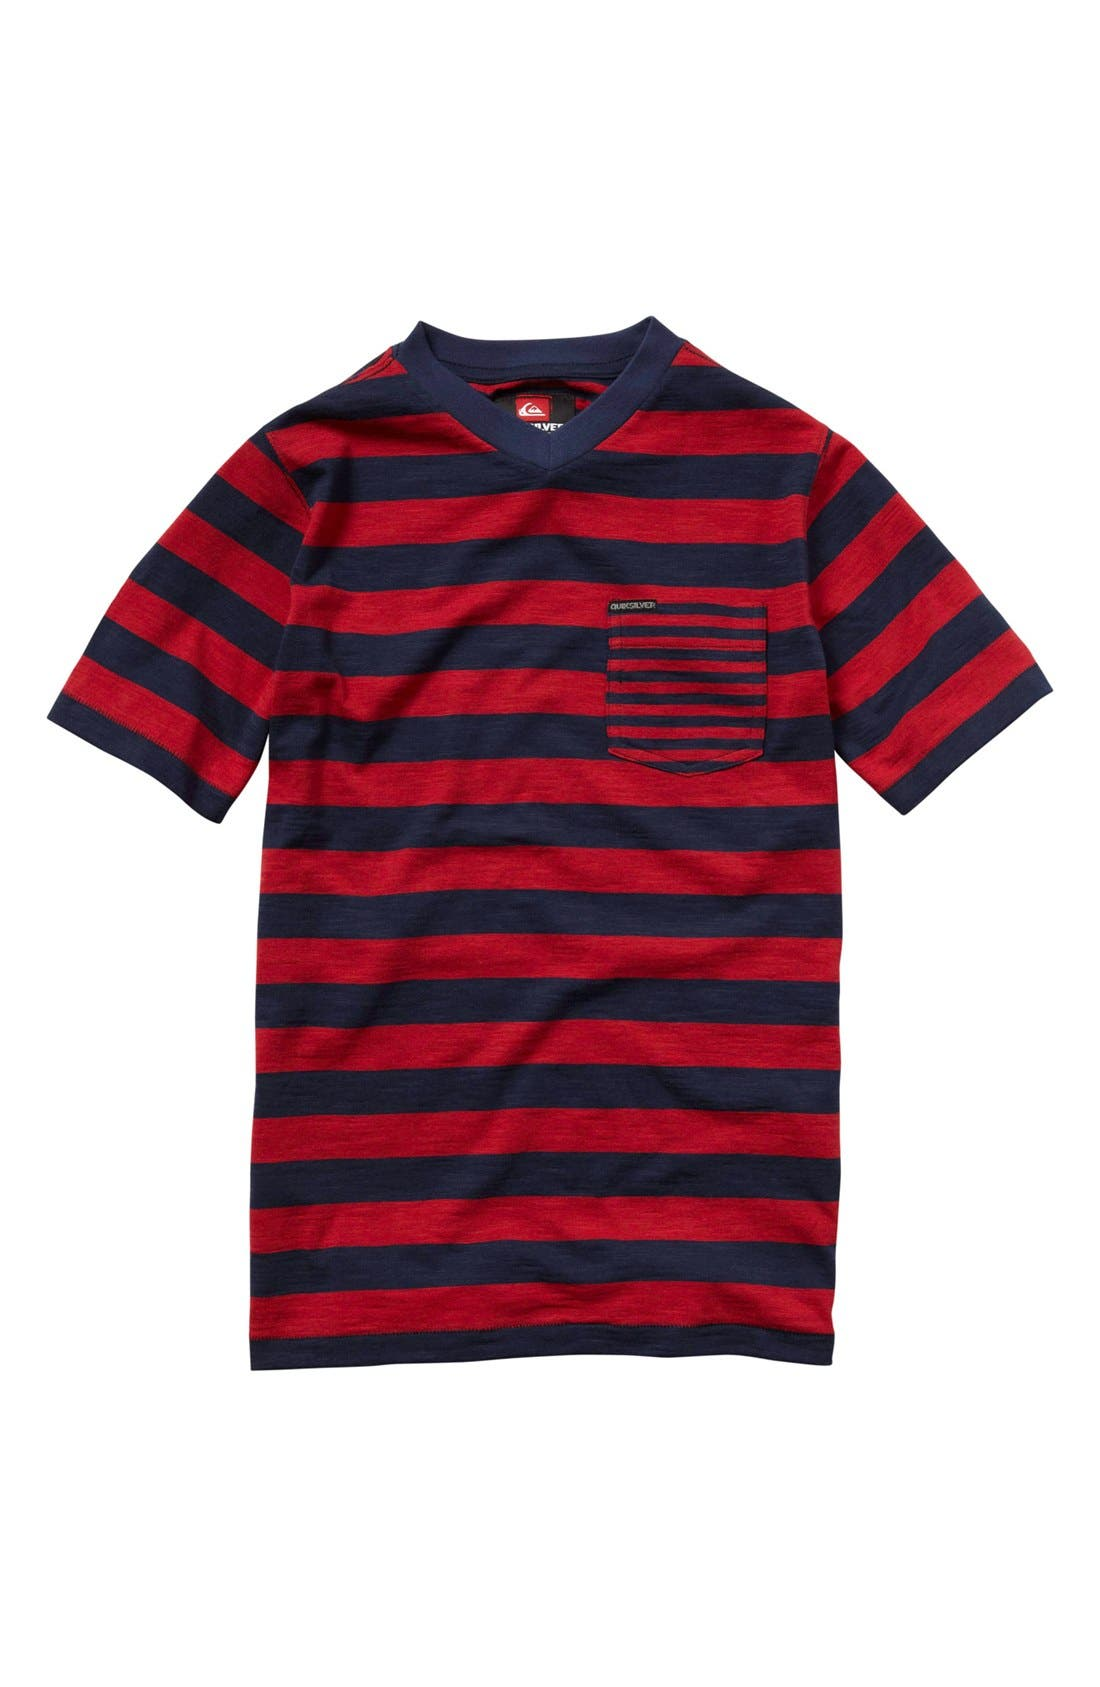 Alternate Image 1 Selected - Quiksilver 'Brody' T-Shirt (Big Boys)